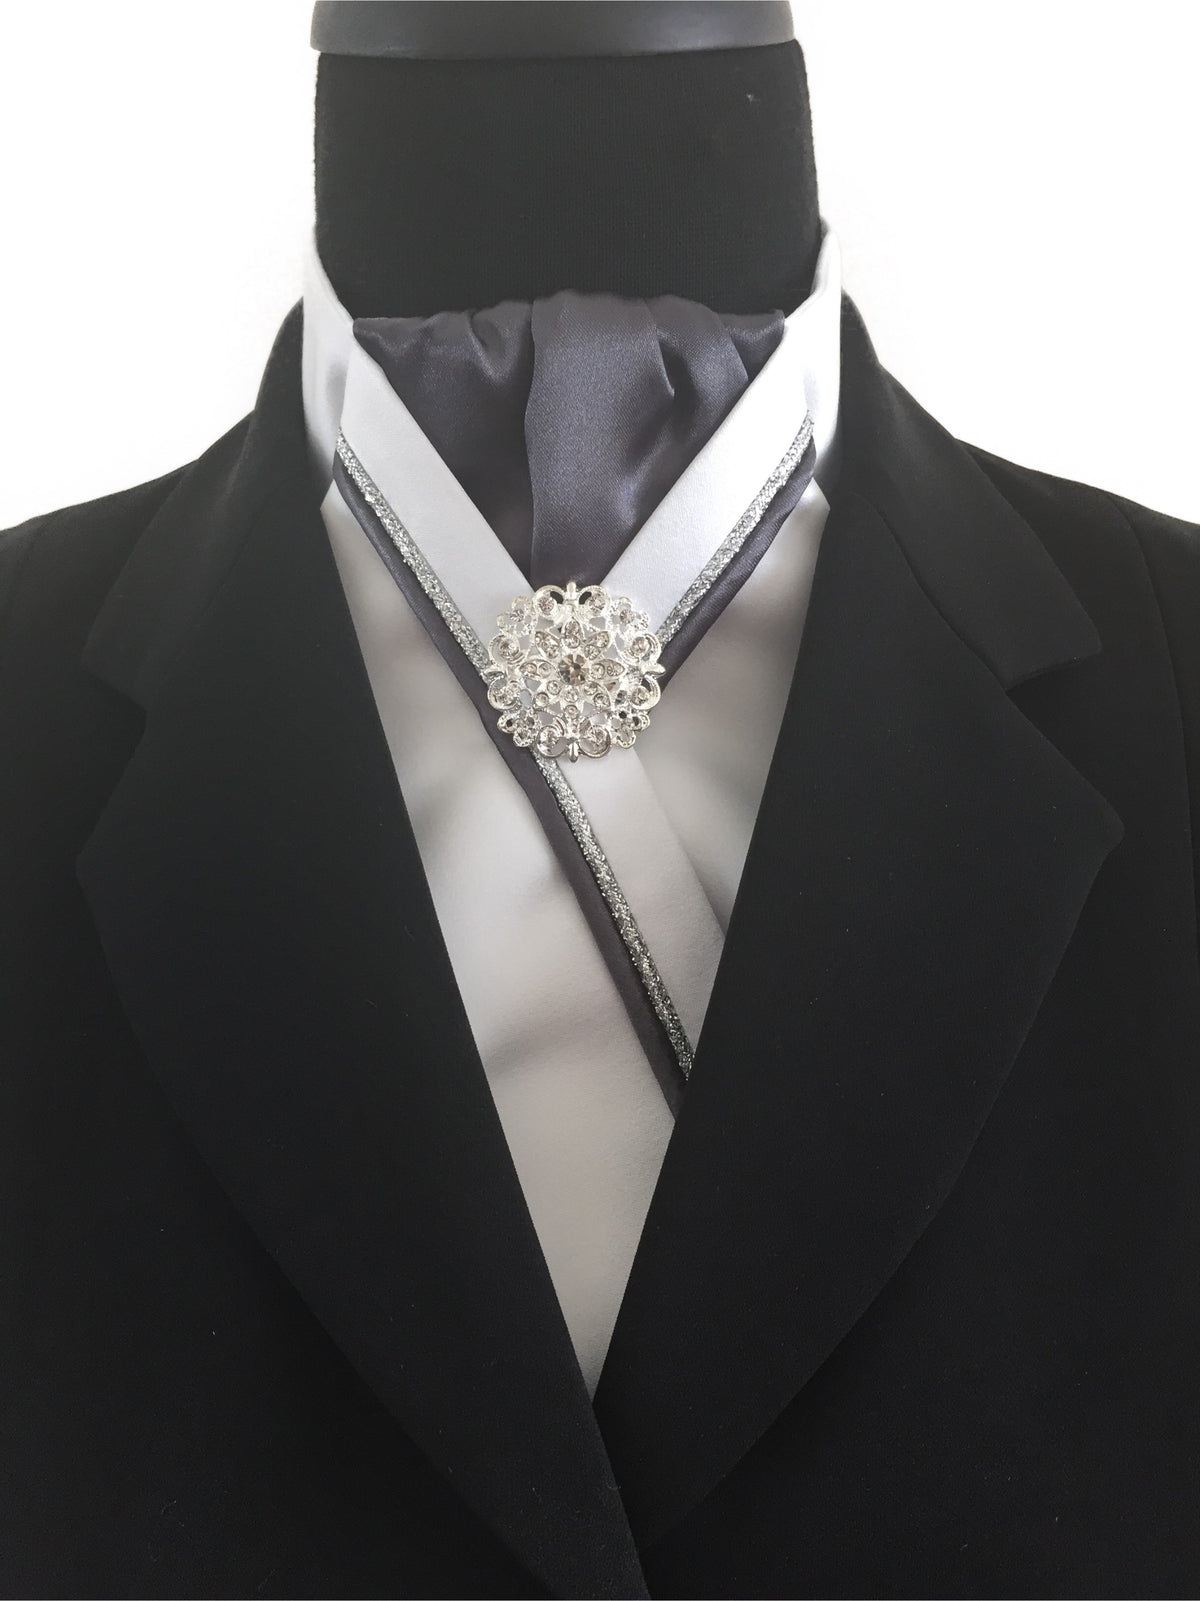 White Stock Tie with Gray Center and Gray & Silver Piping